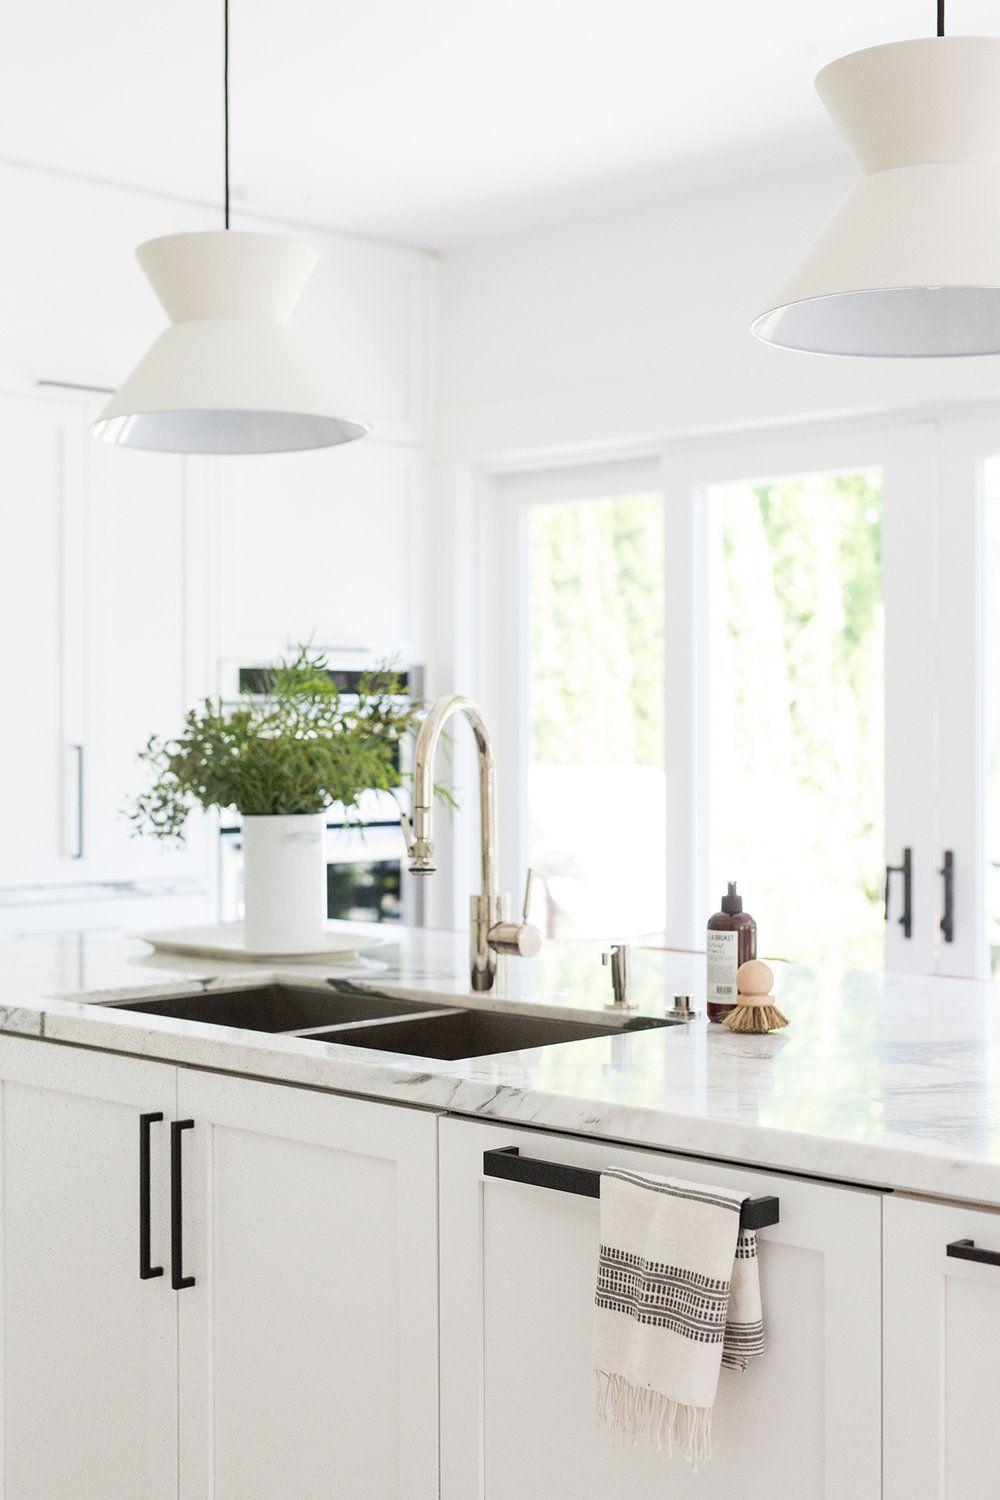 Farmhouse style kitchen with black hardware, polished